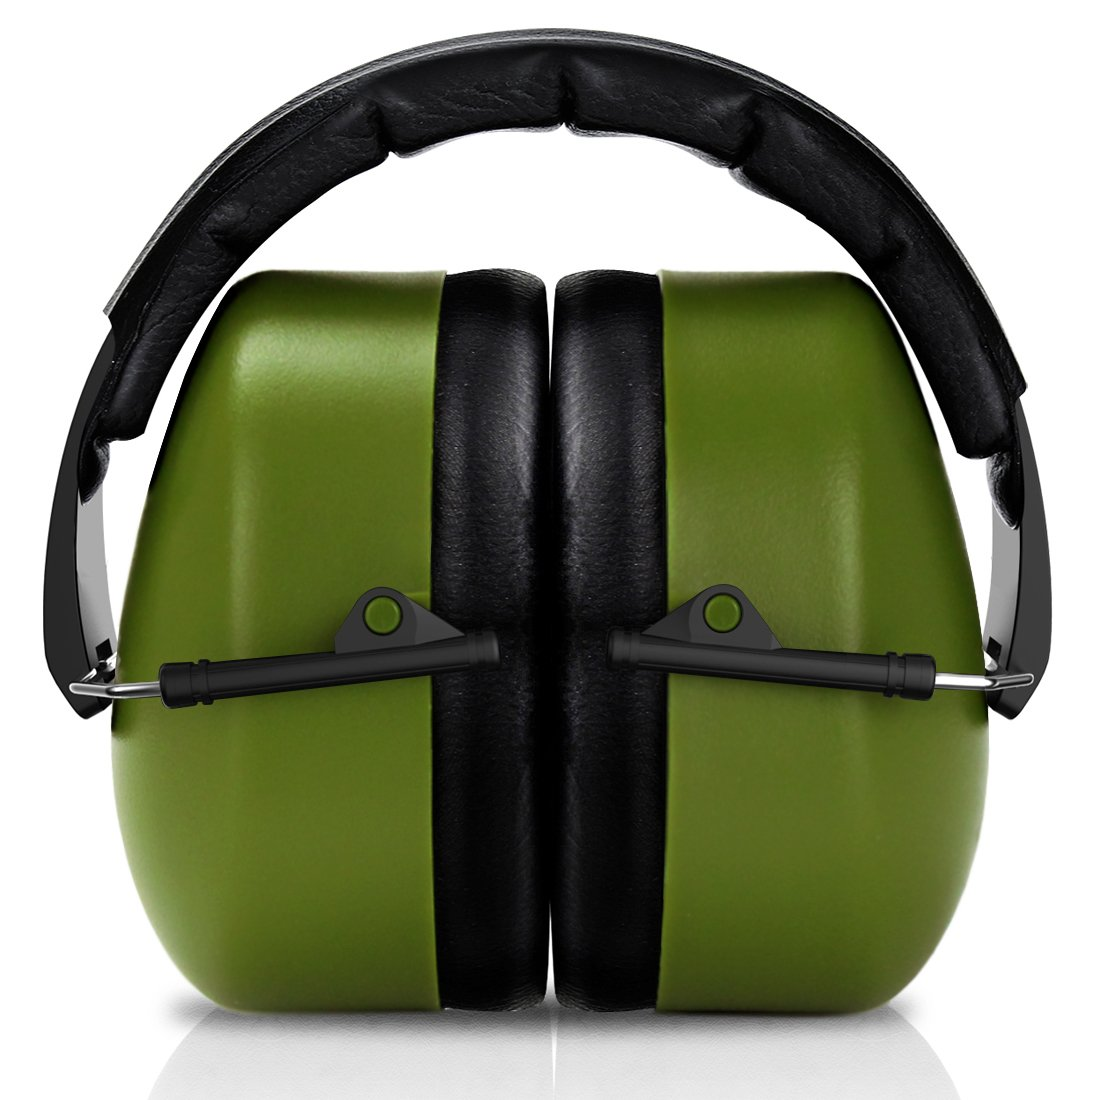 FRiEQ 37 dB NRR Sound Technology Safety Ear Muffs with LRPu Foam for Shooting, Music & Yard Work, Green by FRIEQ